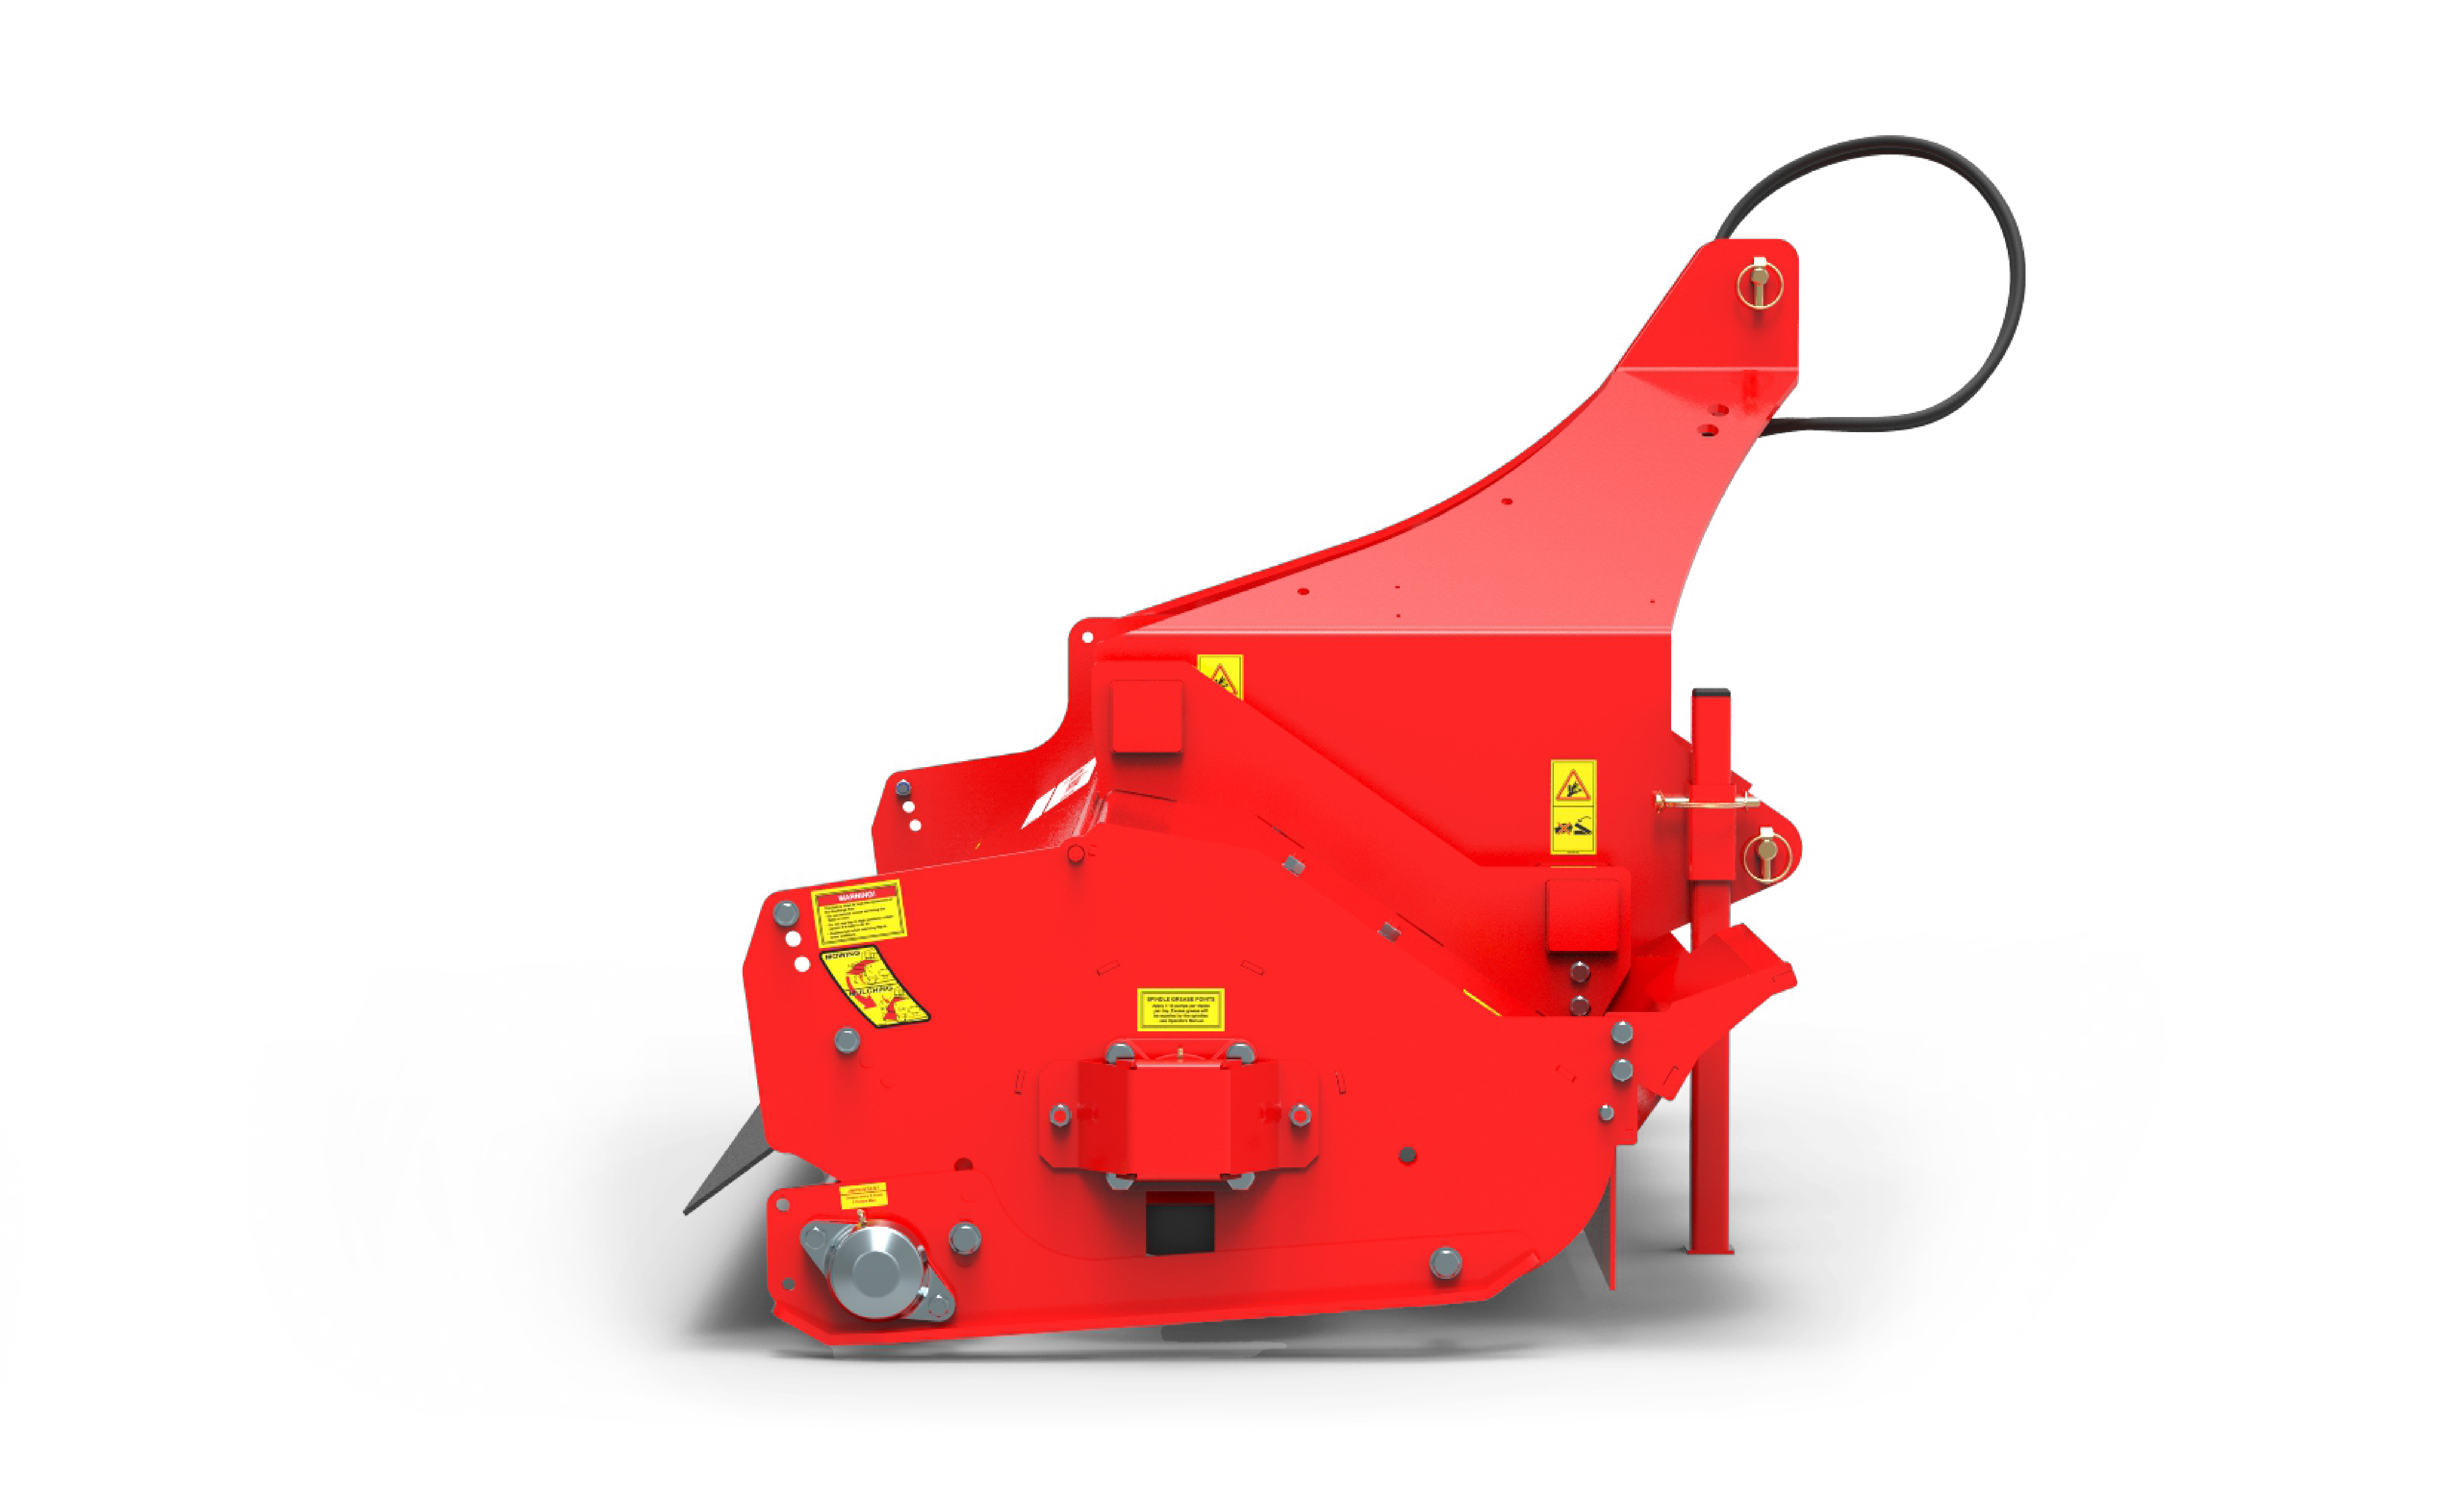 Warlord S3 lawn mower sideview red